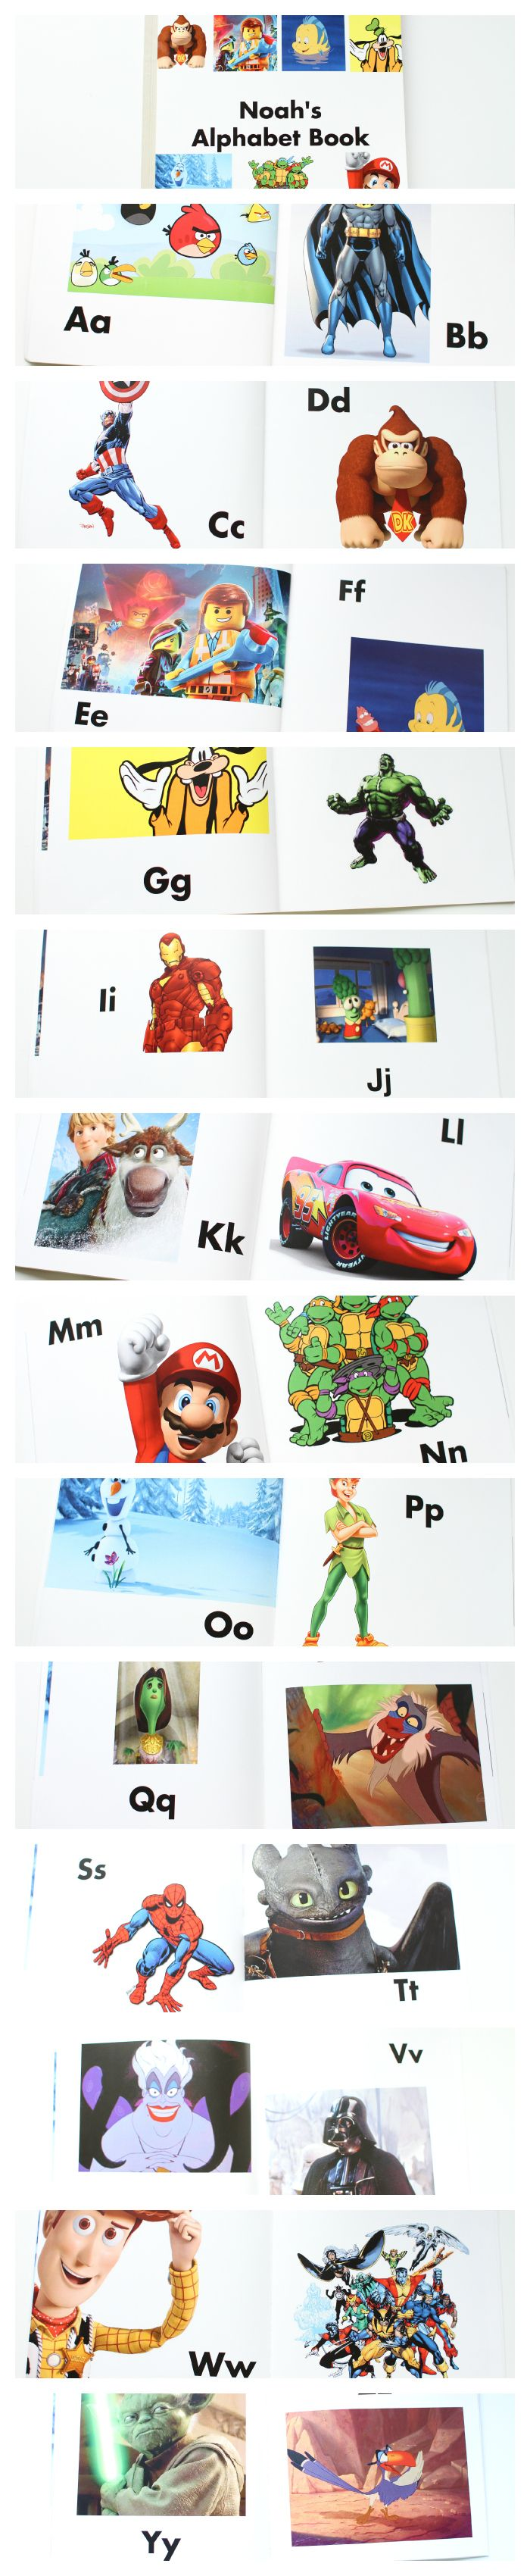 Cartoon Characters 7 Letters : Best images about teach alphabet on pinterest the